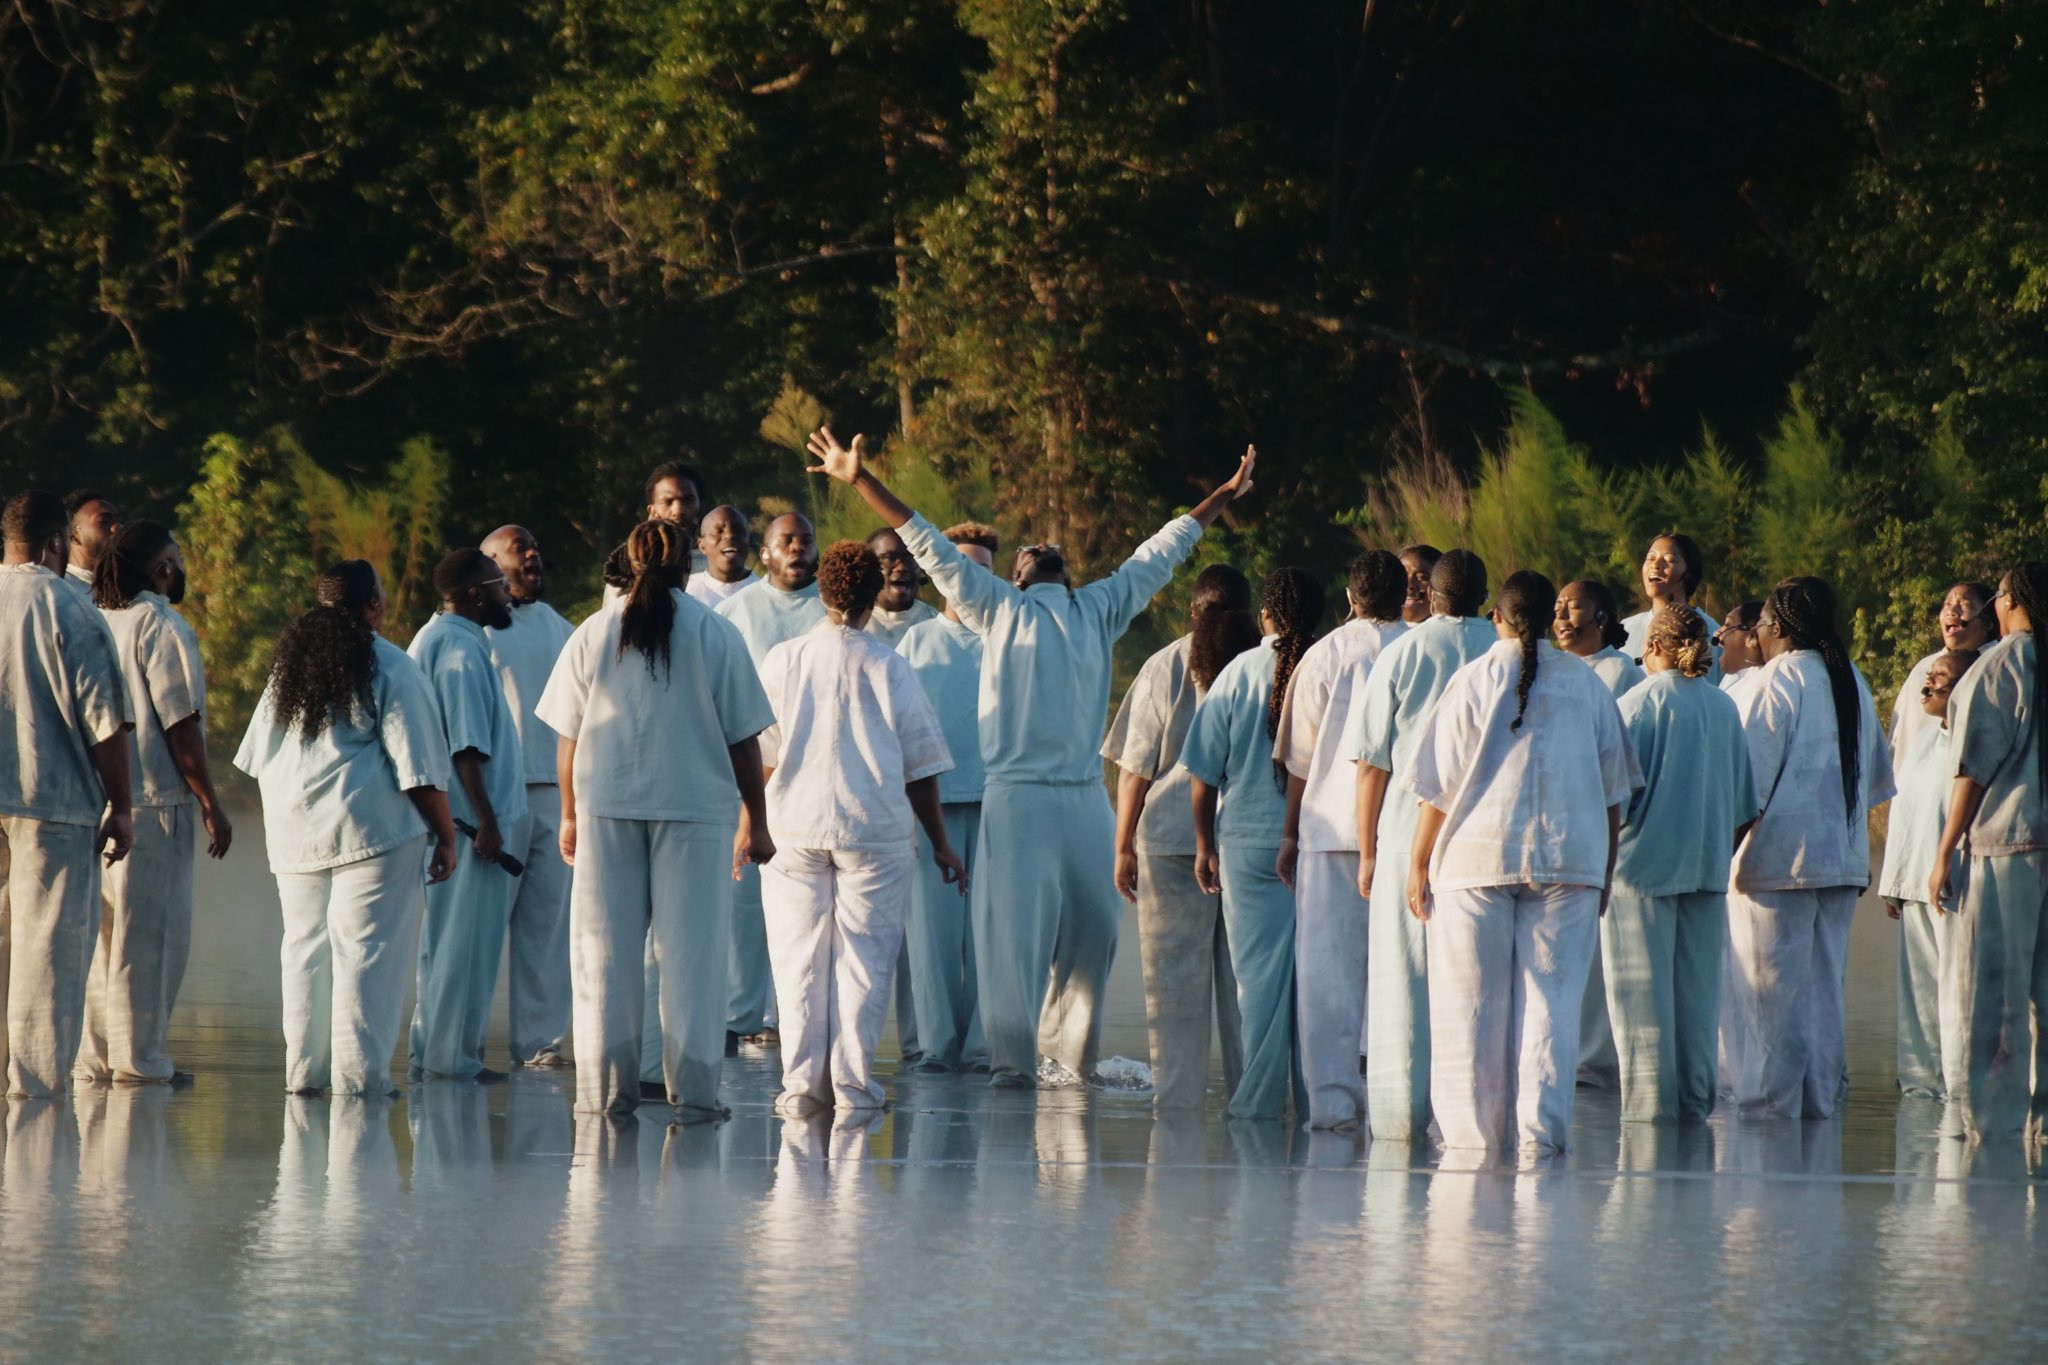 Kanye West, His Sunday Service Crew And Joel Osteen 'Walk On Water' (Video)